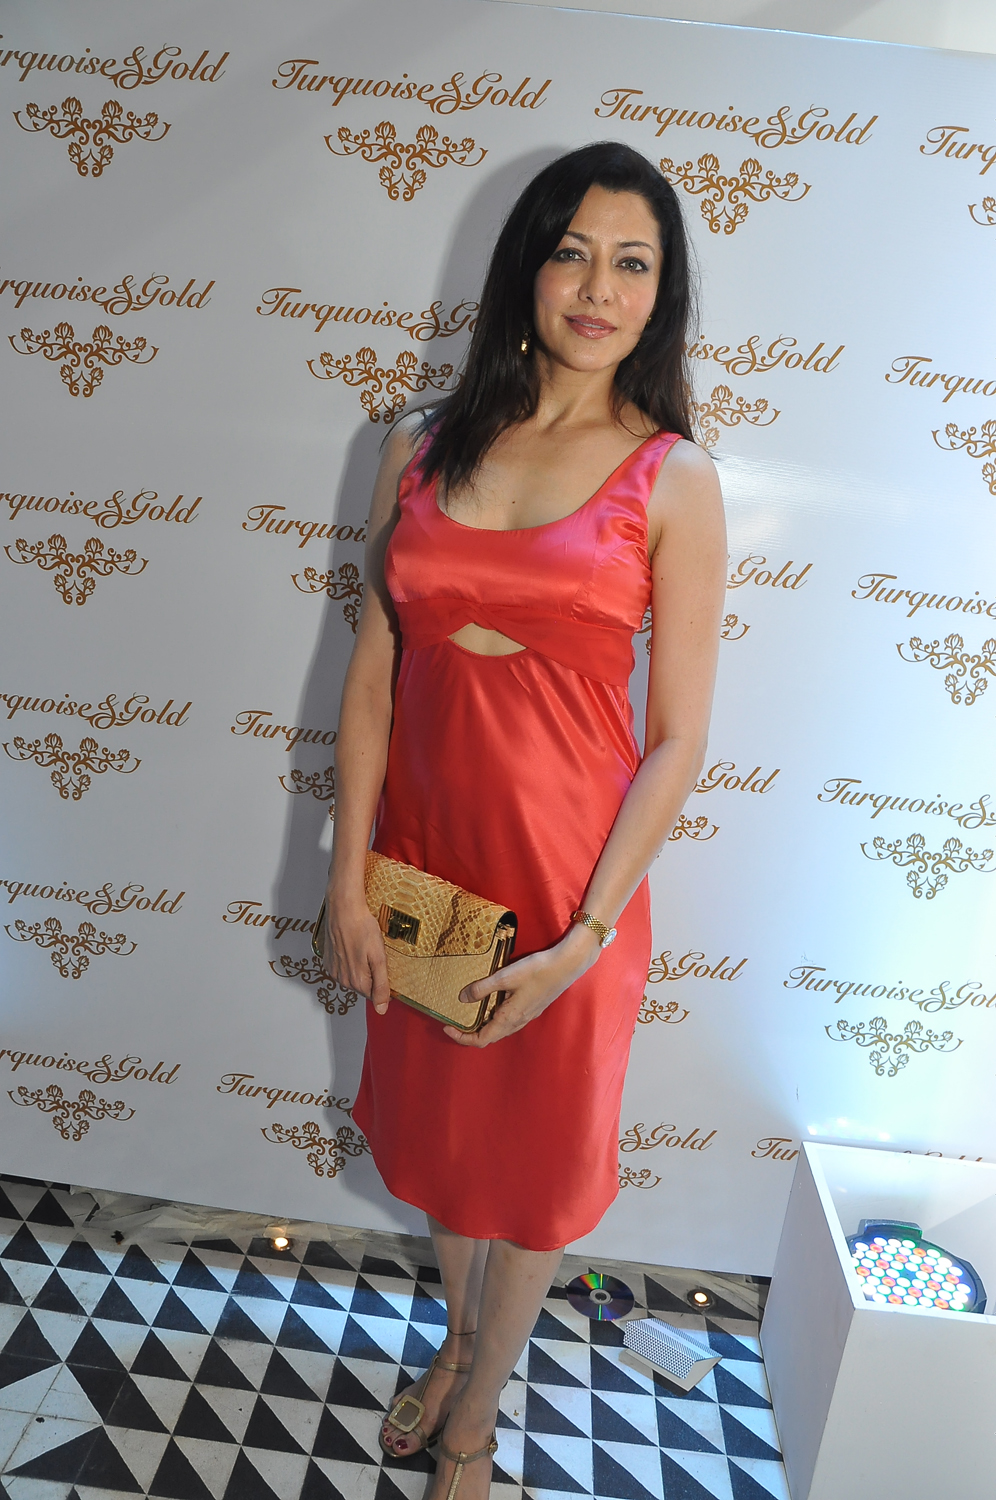 Aditi Gowitrikar at the T&G launch.JPG